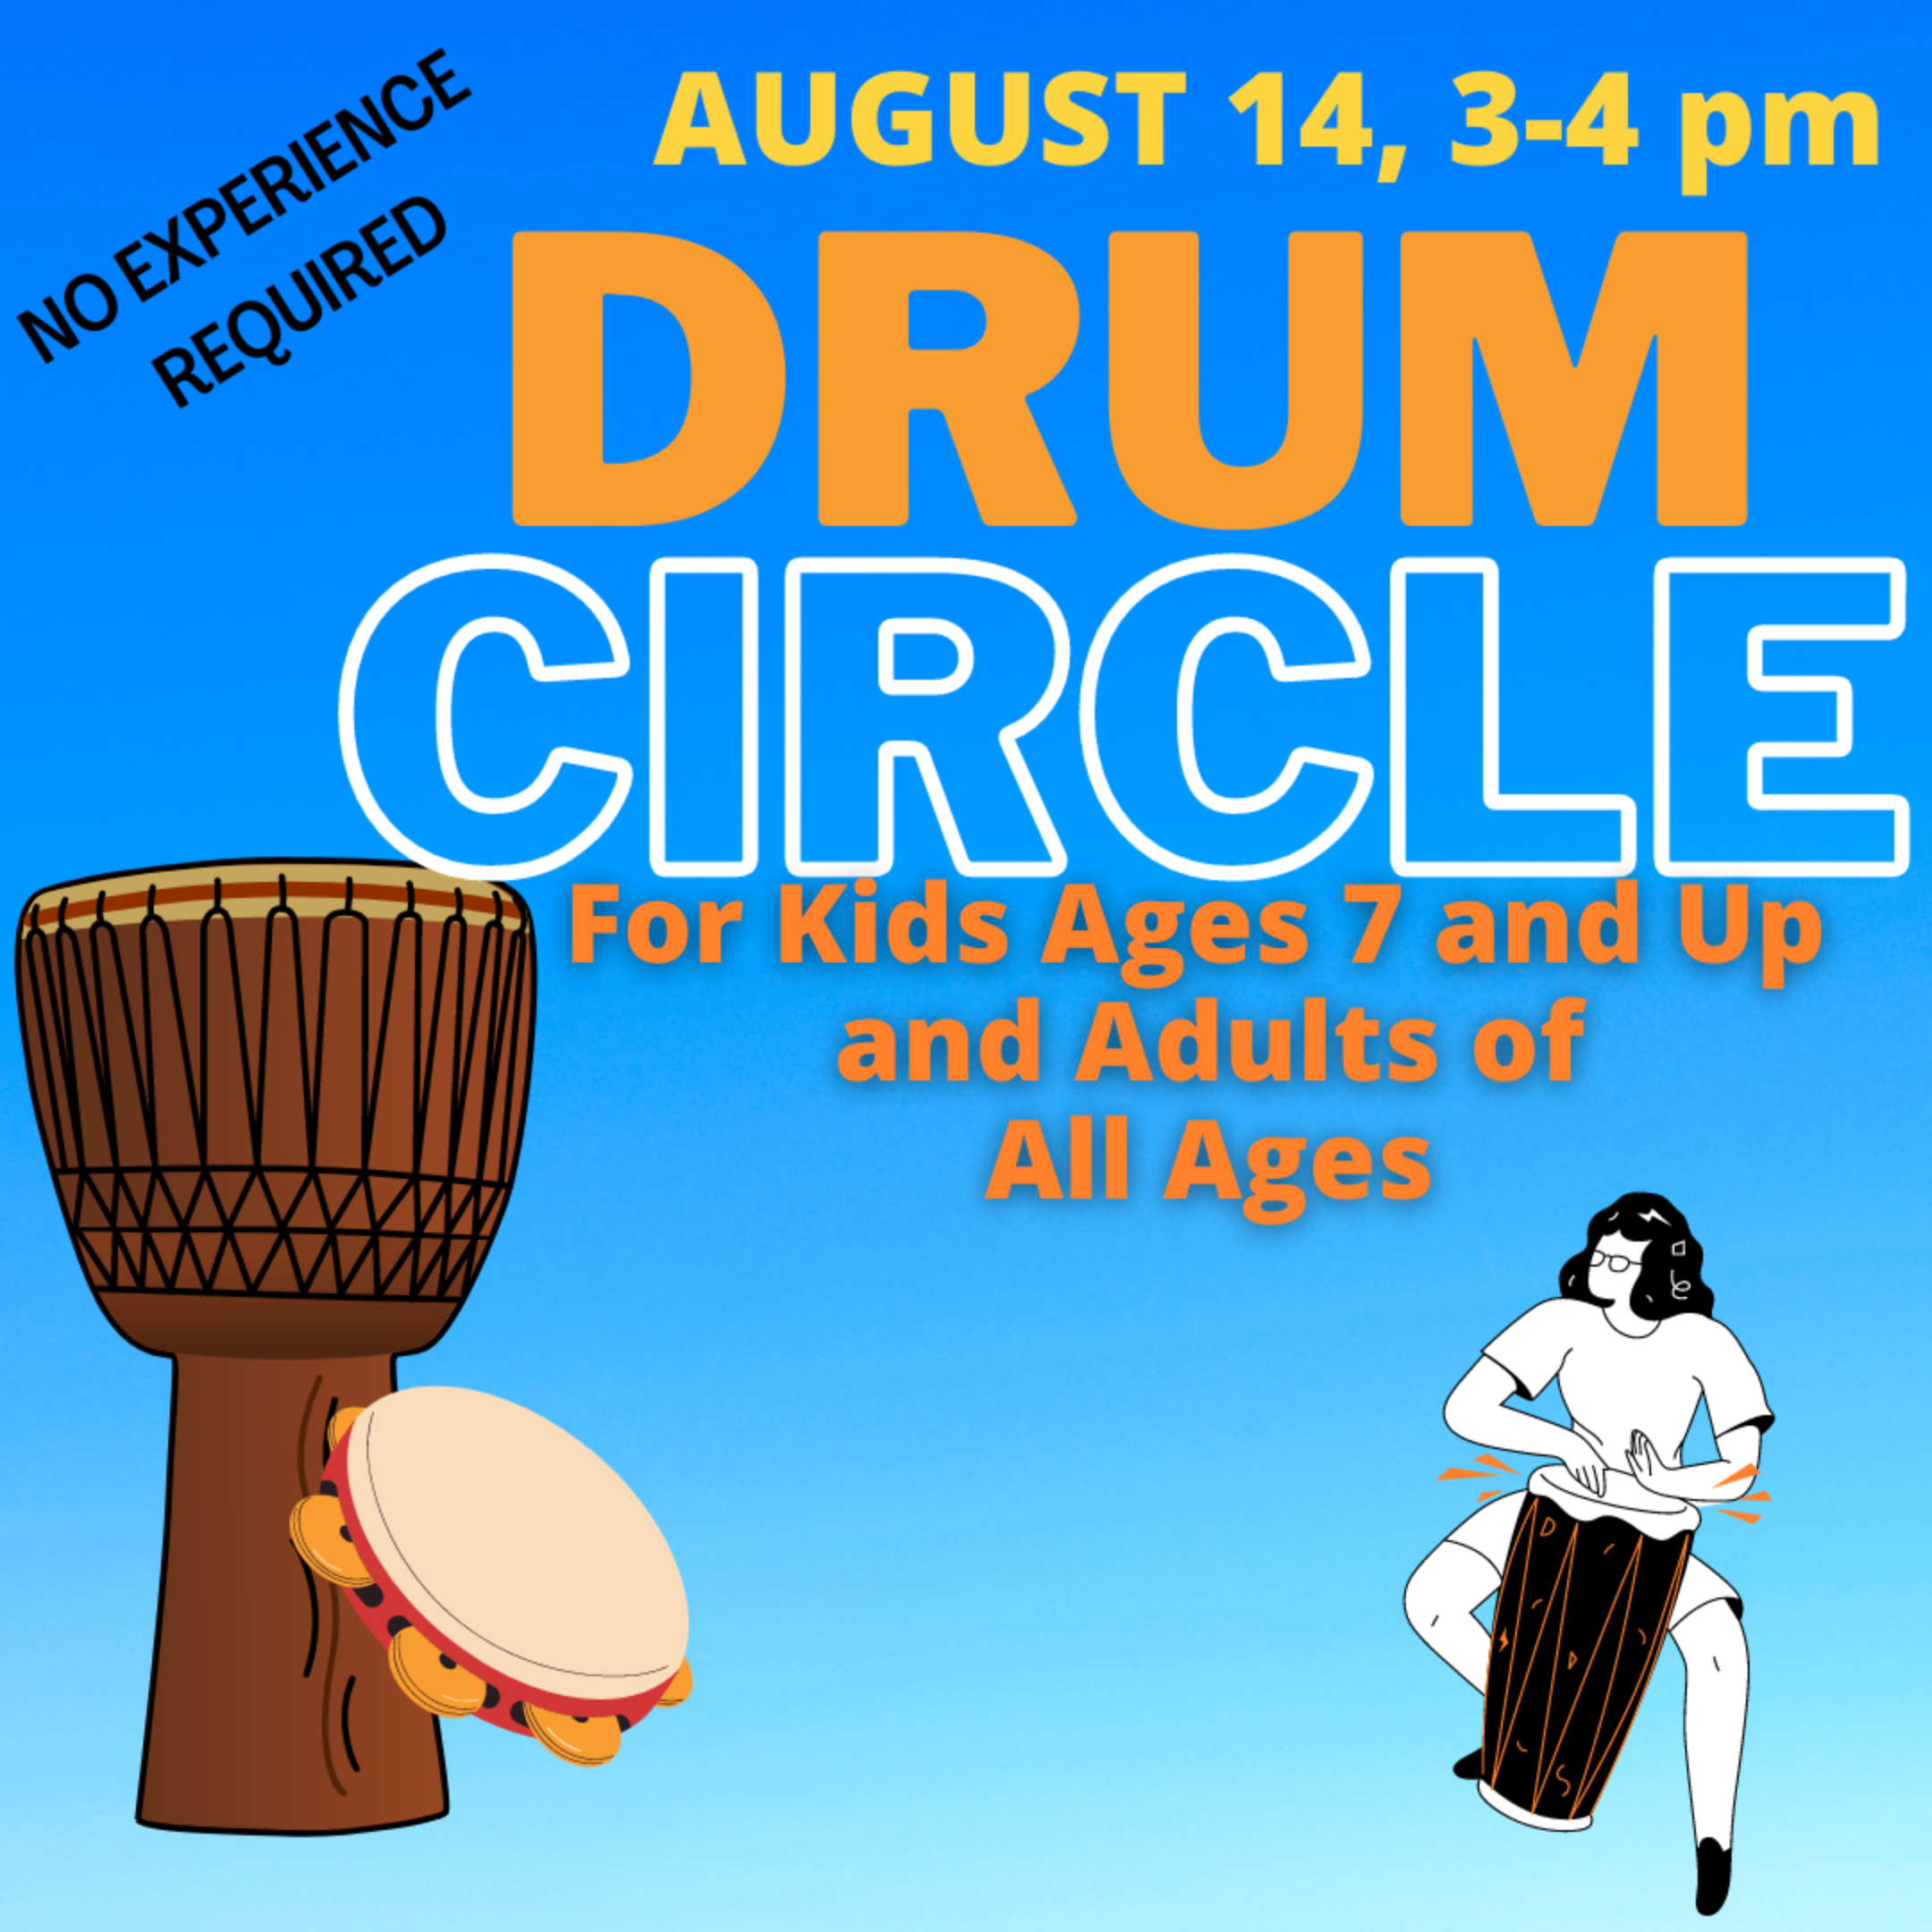 Drum Circle for Kids and Adults